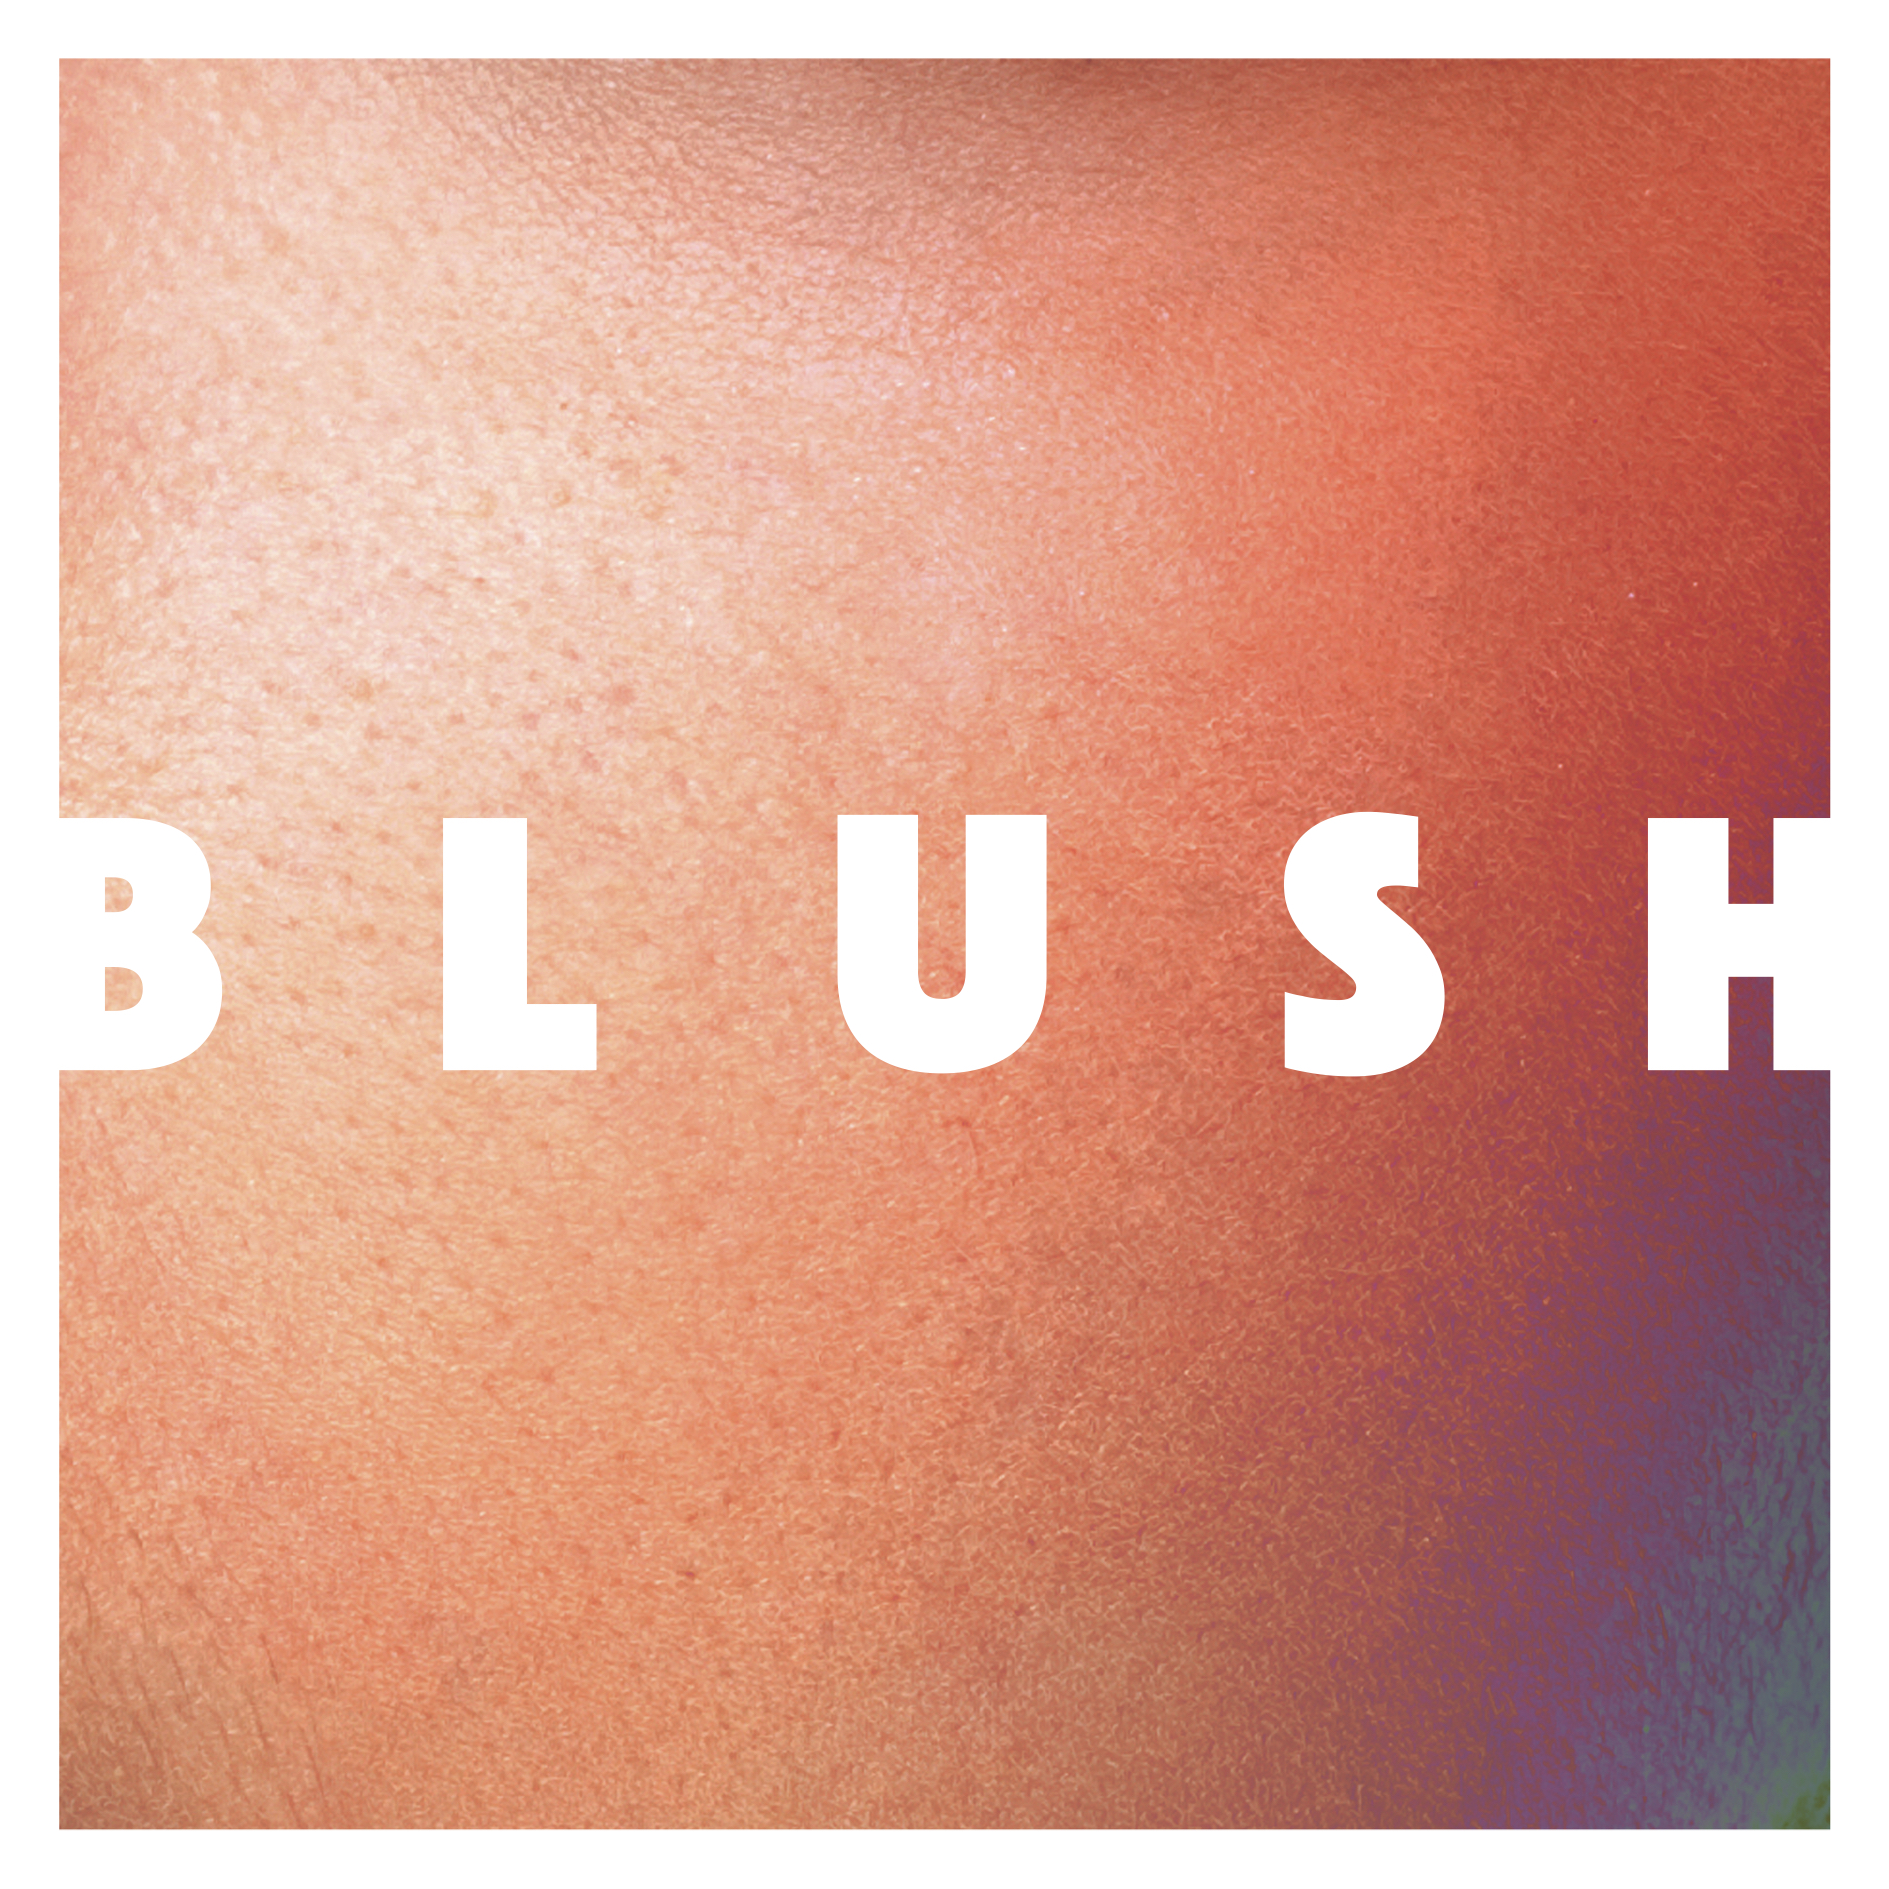 blush artwork.jpg